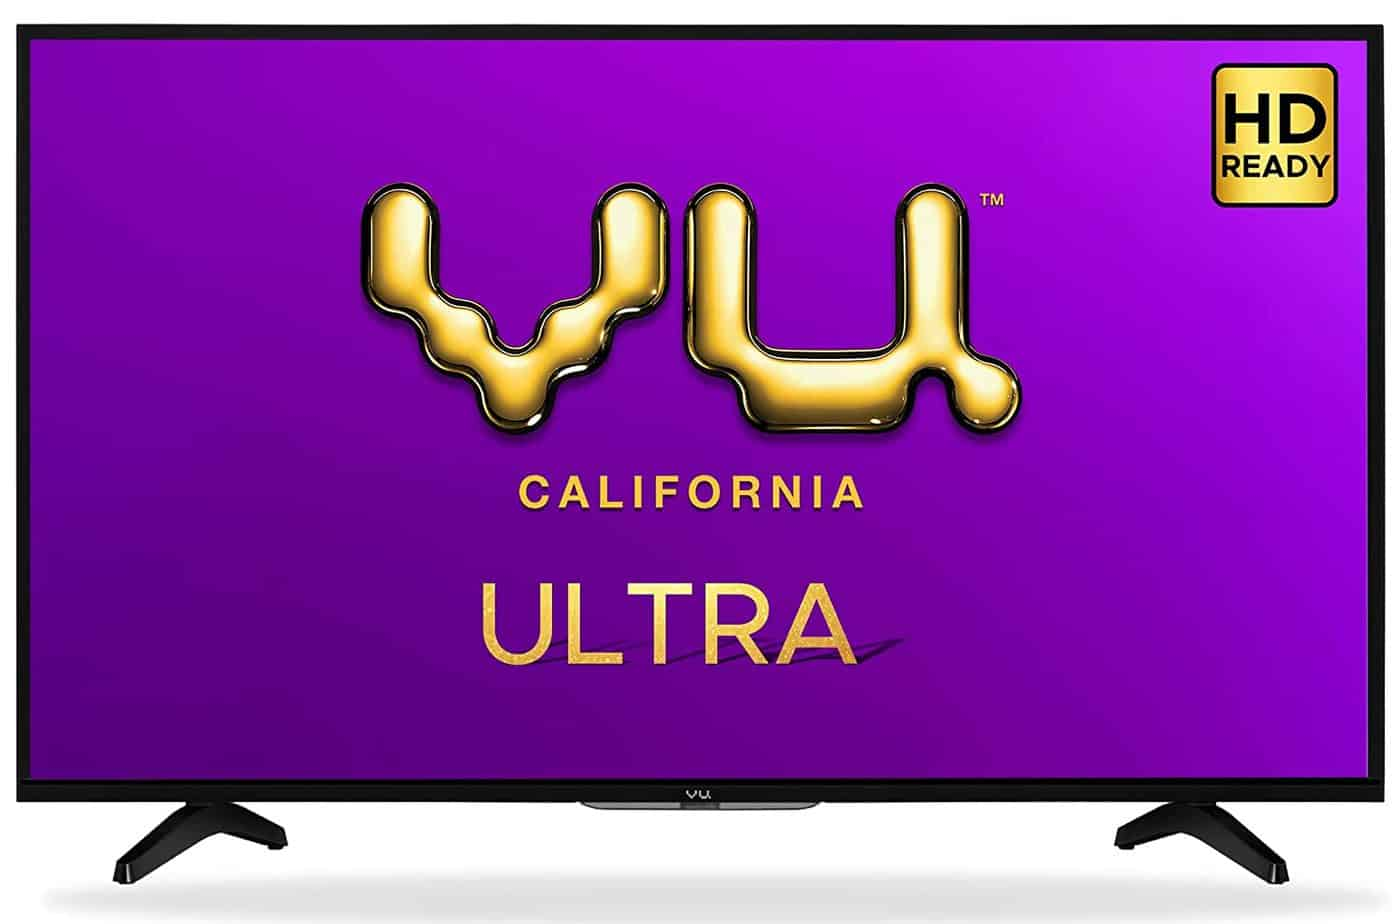 Vu 80 cm Android HD Ready LED TV